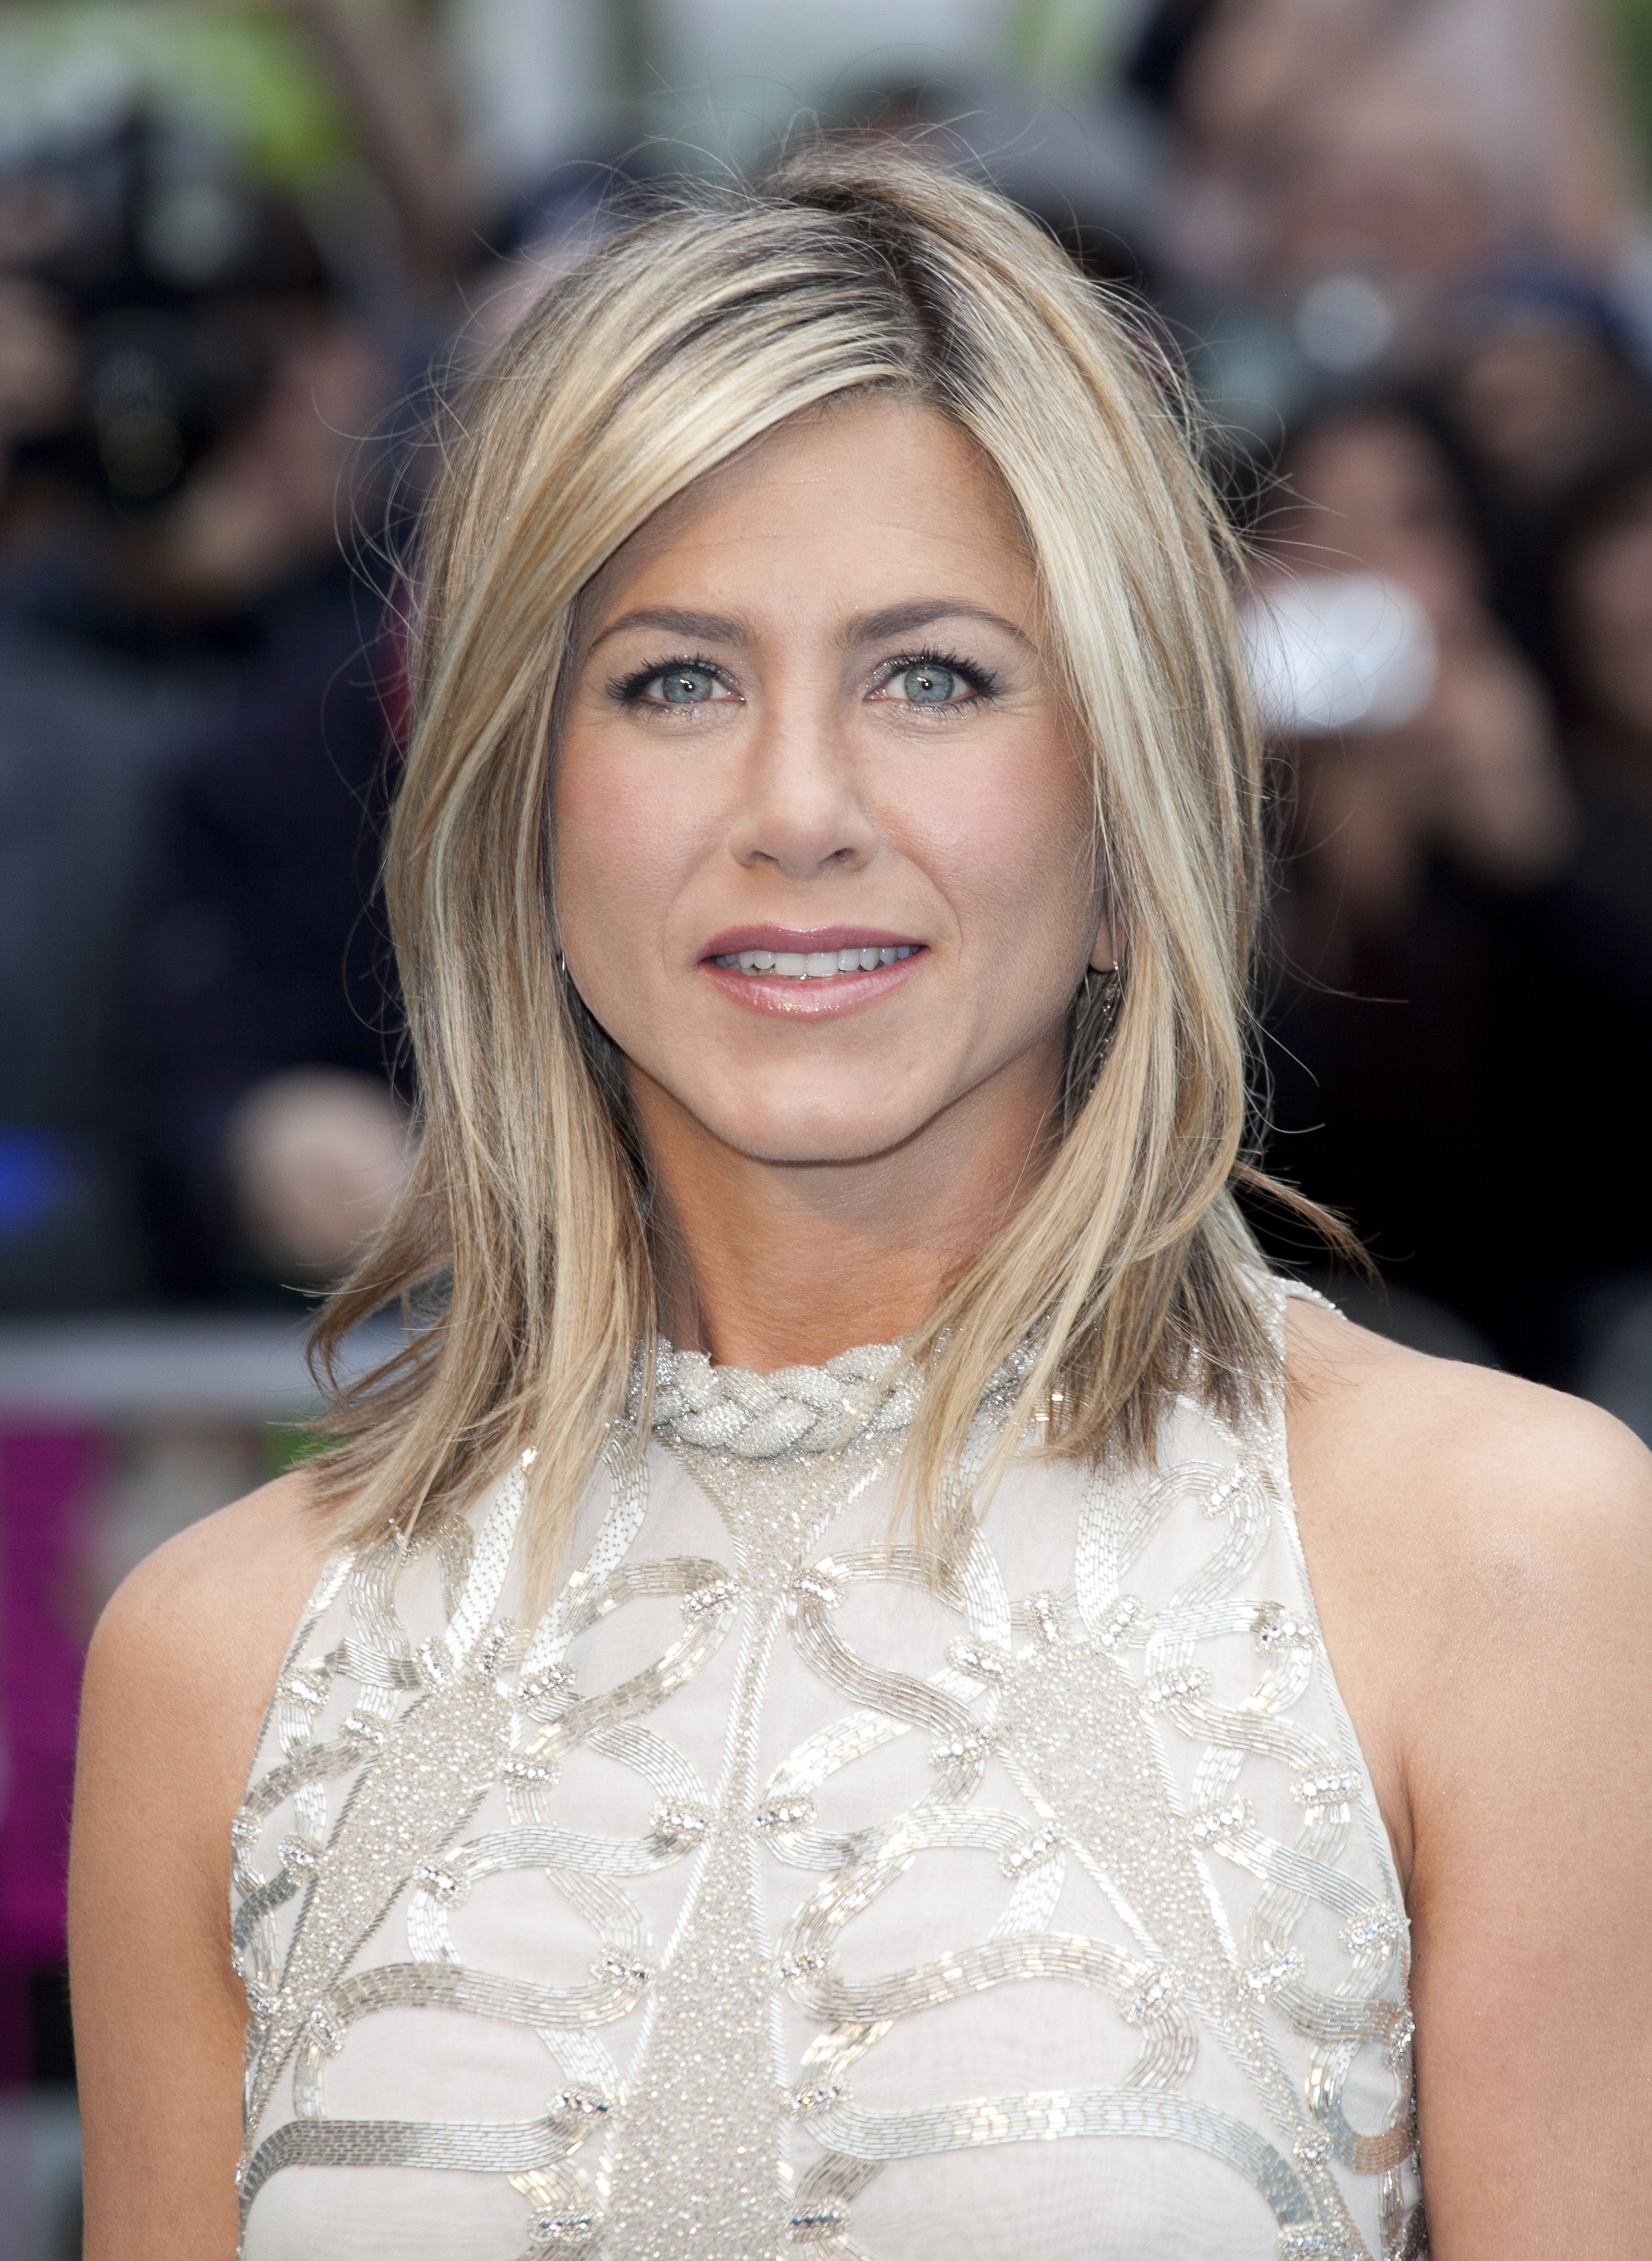 If I go shorter this is what I want. 2011 Photo Credit: UK Press via Getty Images via @stylelist